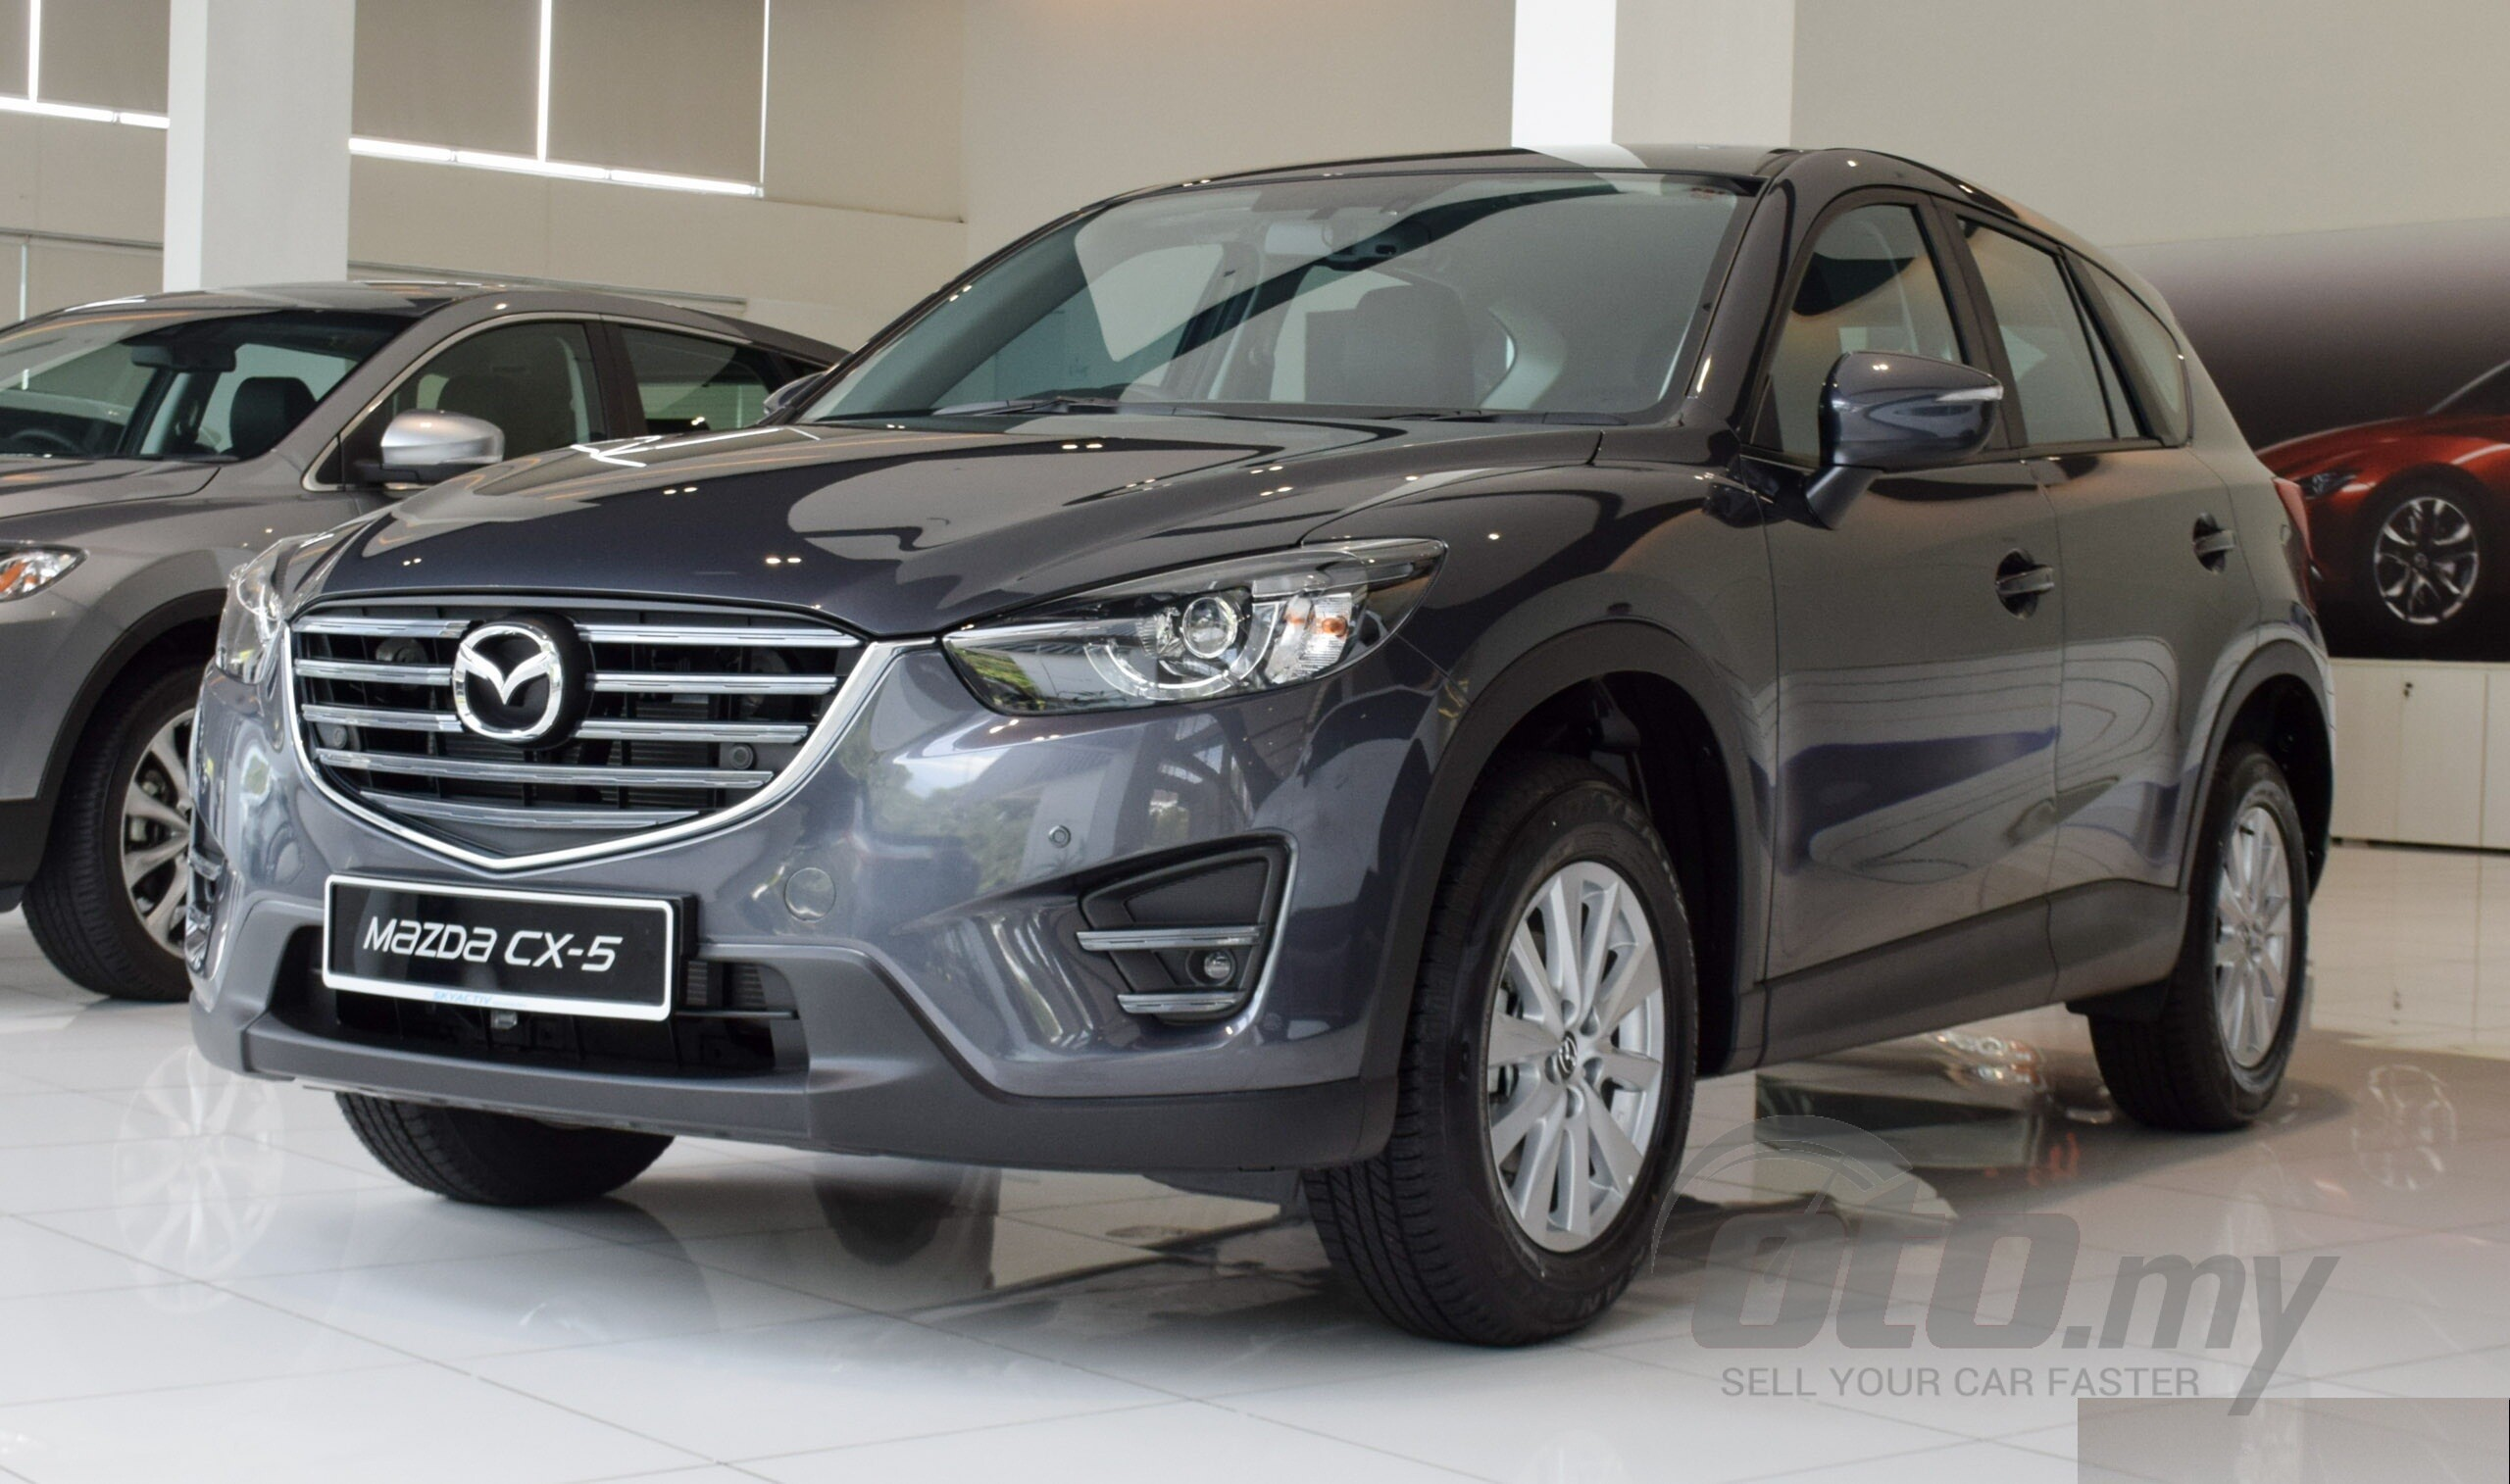 models beijing future about confirms show goauto cx more mazda learn new the